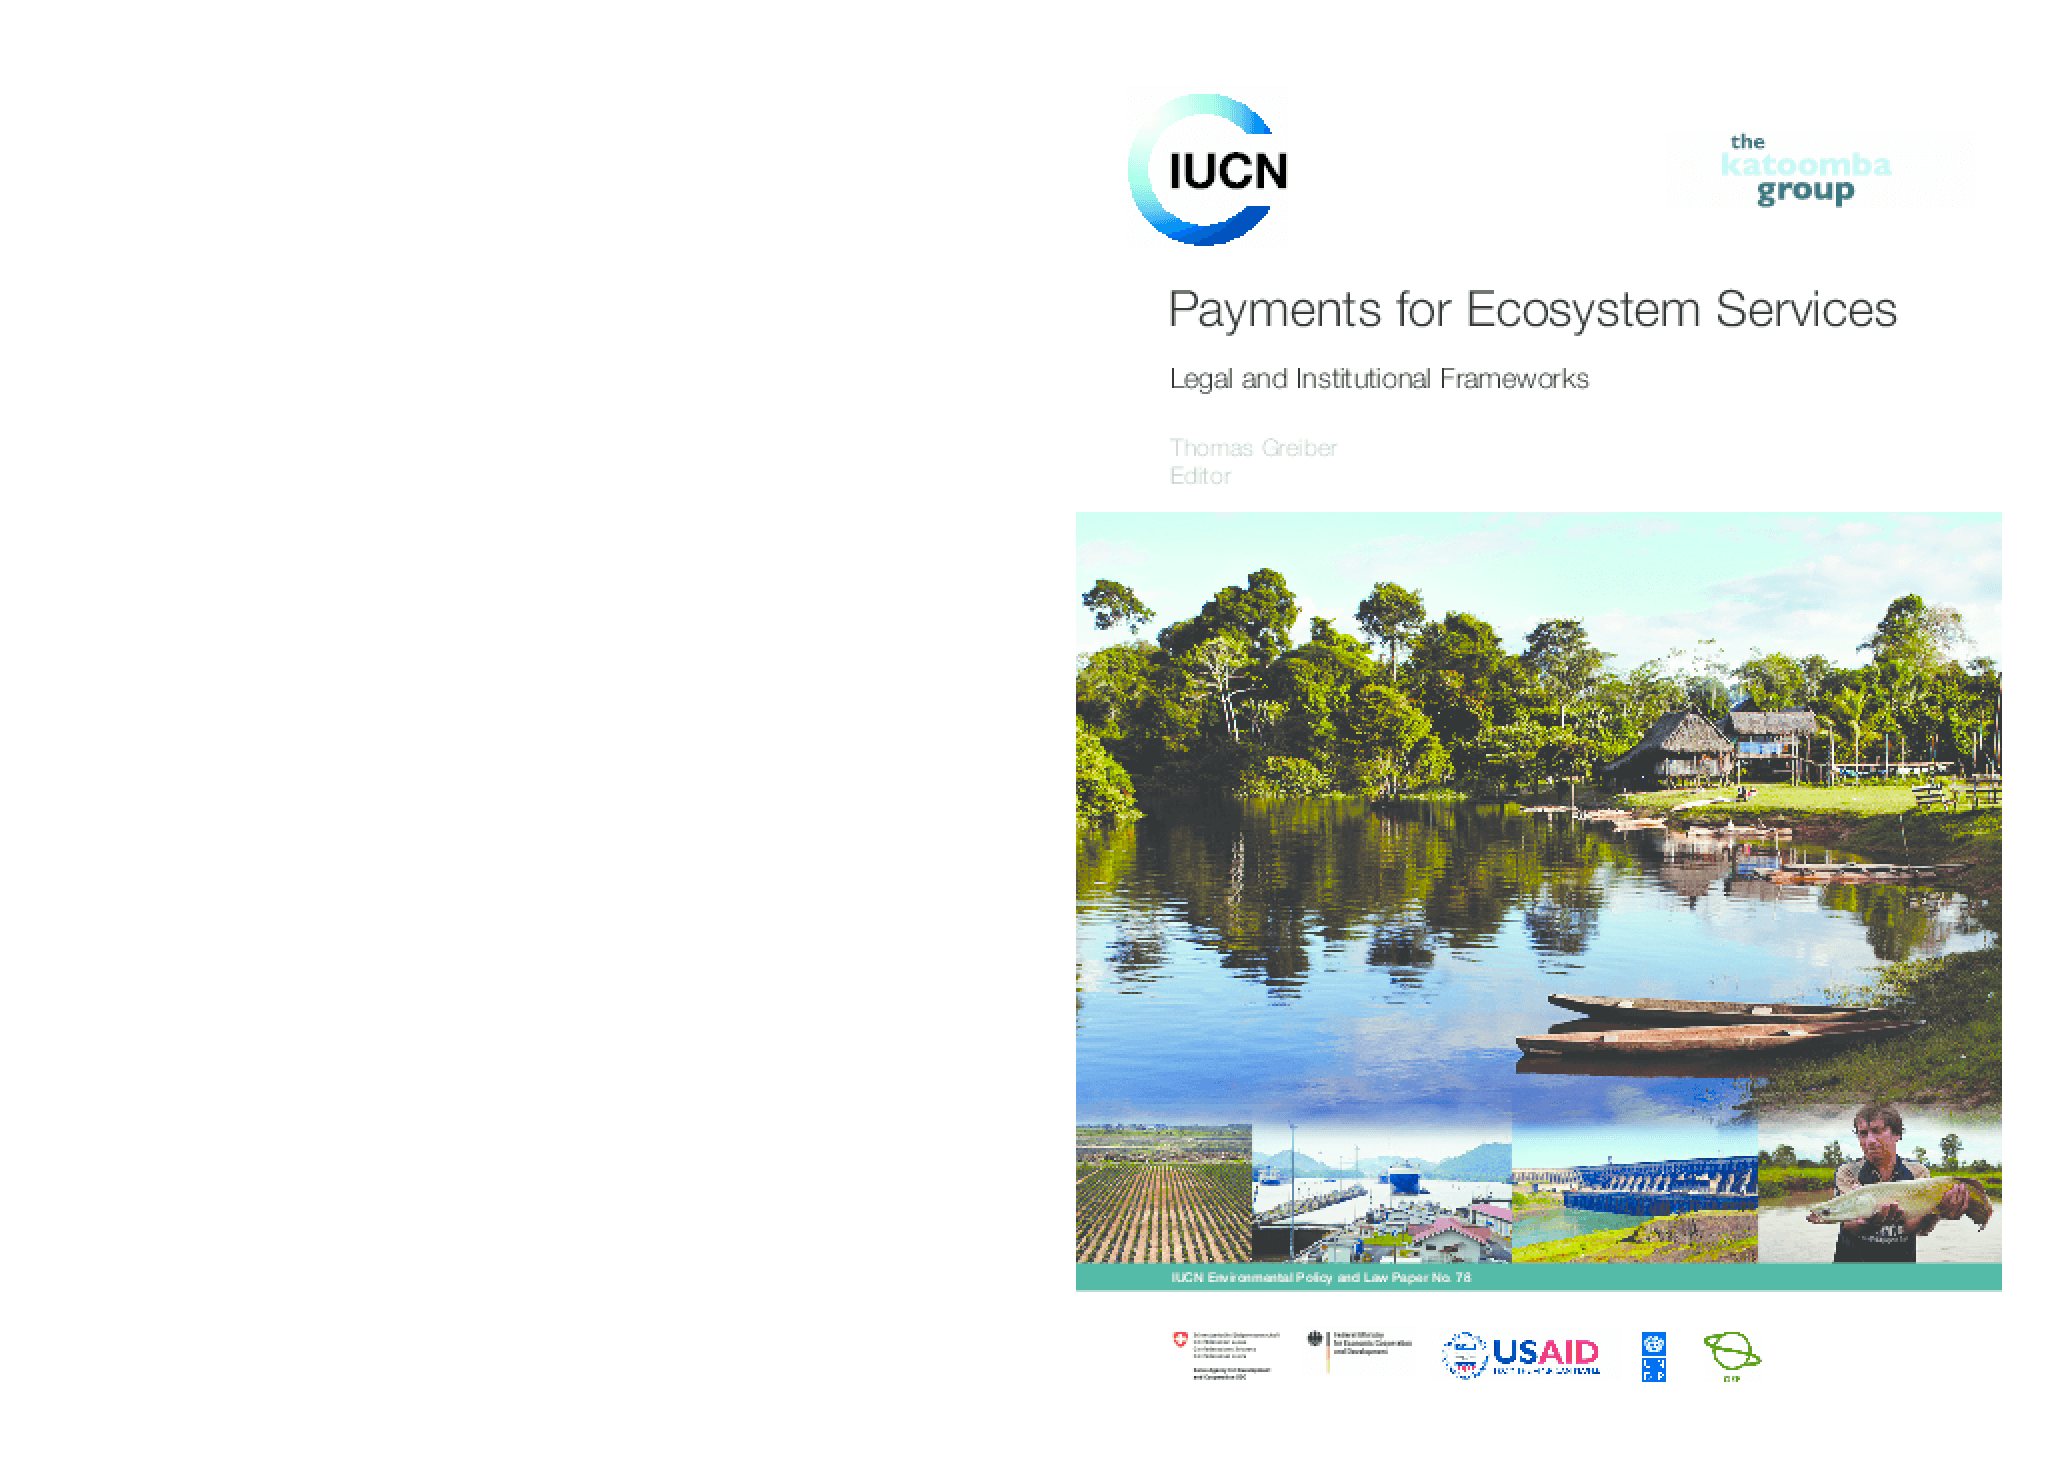 Payments for Ecosystem Services: Legal and Institutional Frameworks